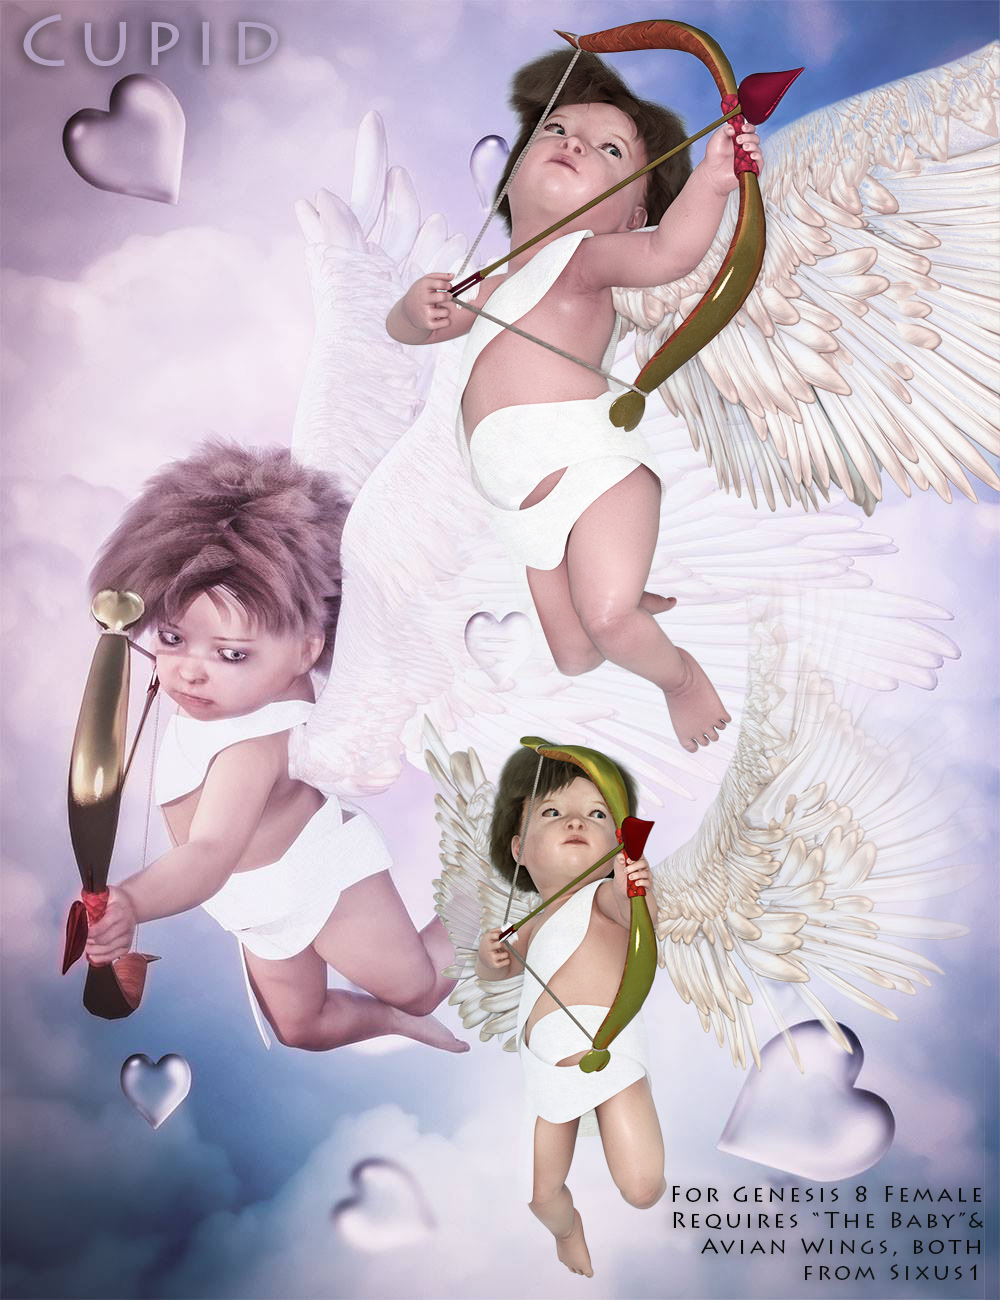 Cupid for Sixus1s Genesis 8 Baby by sixus1